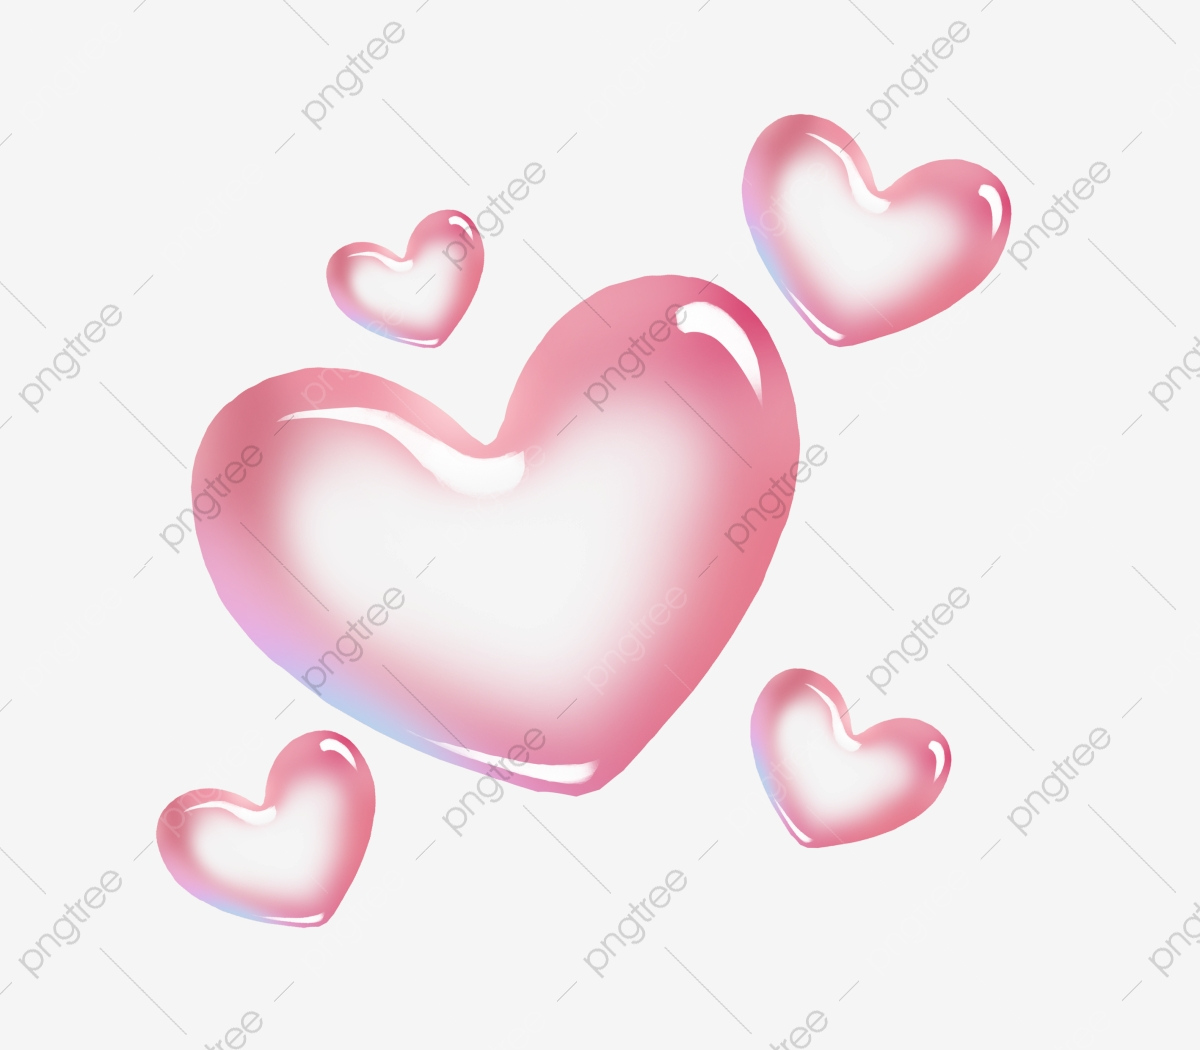 Red Heart Clipart I2clipart Royalty Free 3